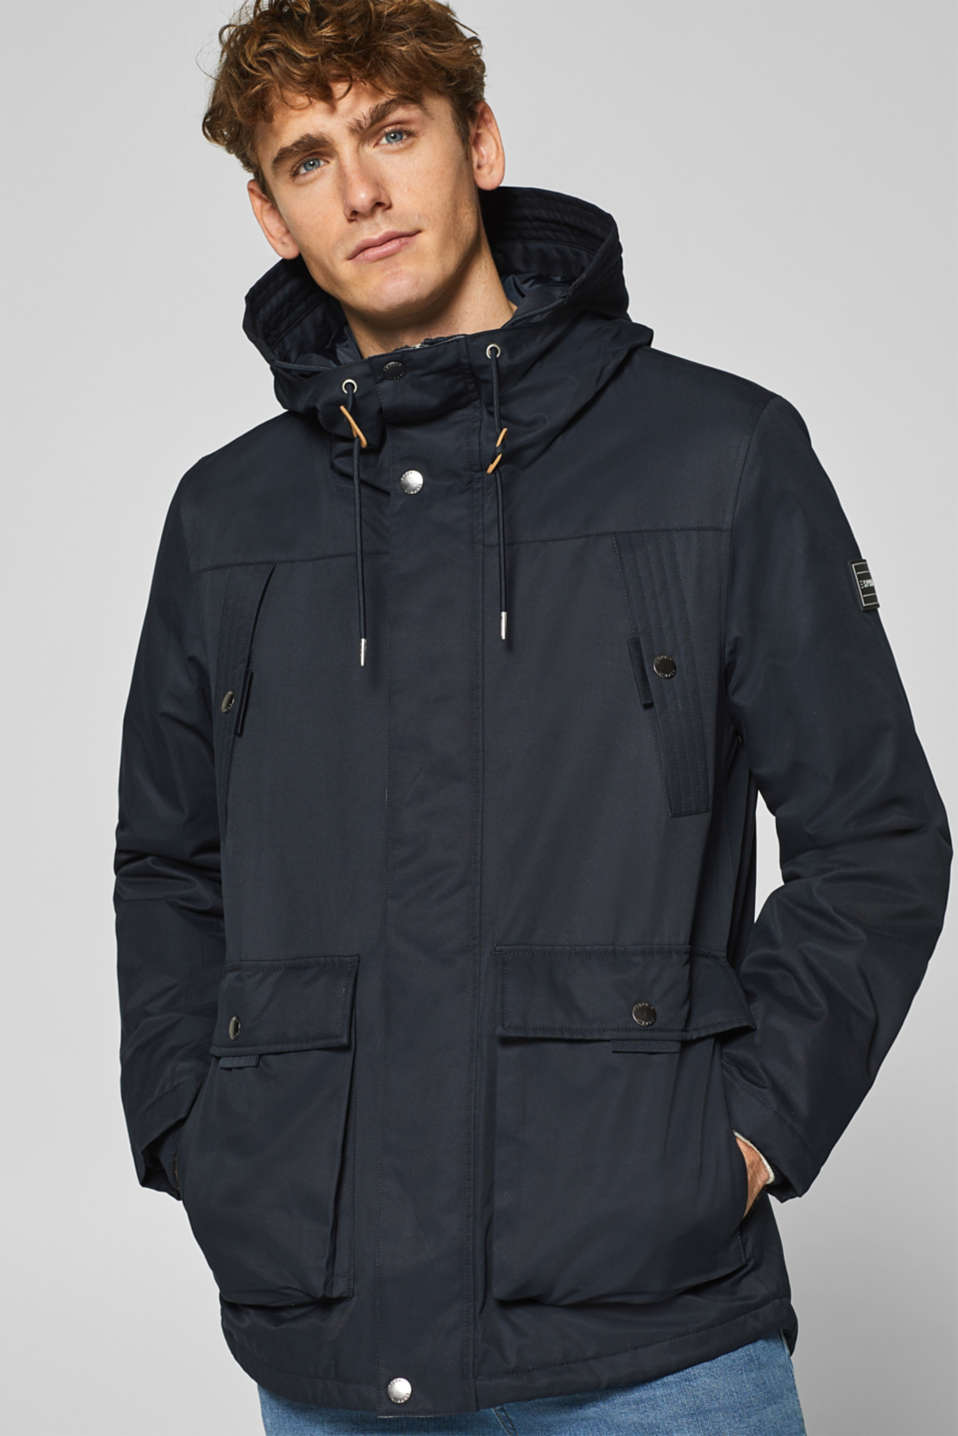 Esprit - Winter jacket with a hood in blended cotton